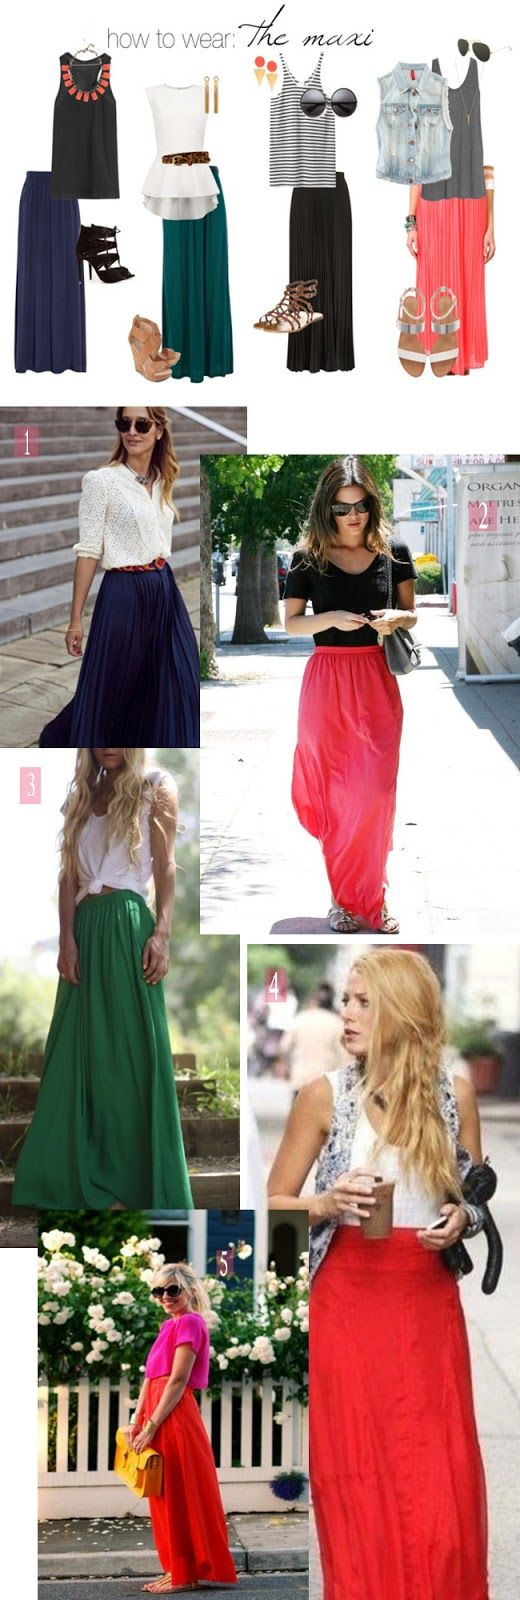 how to wear: the maxi's for summer